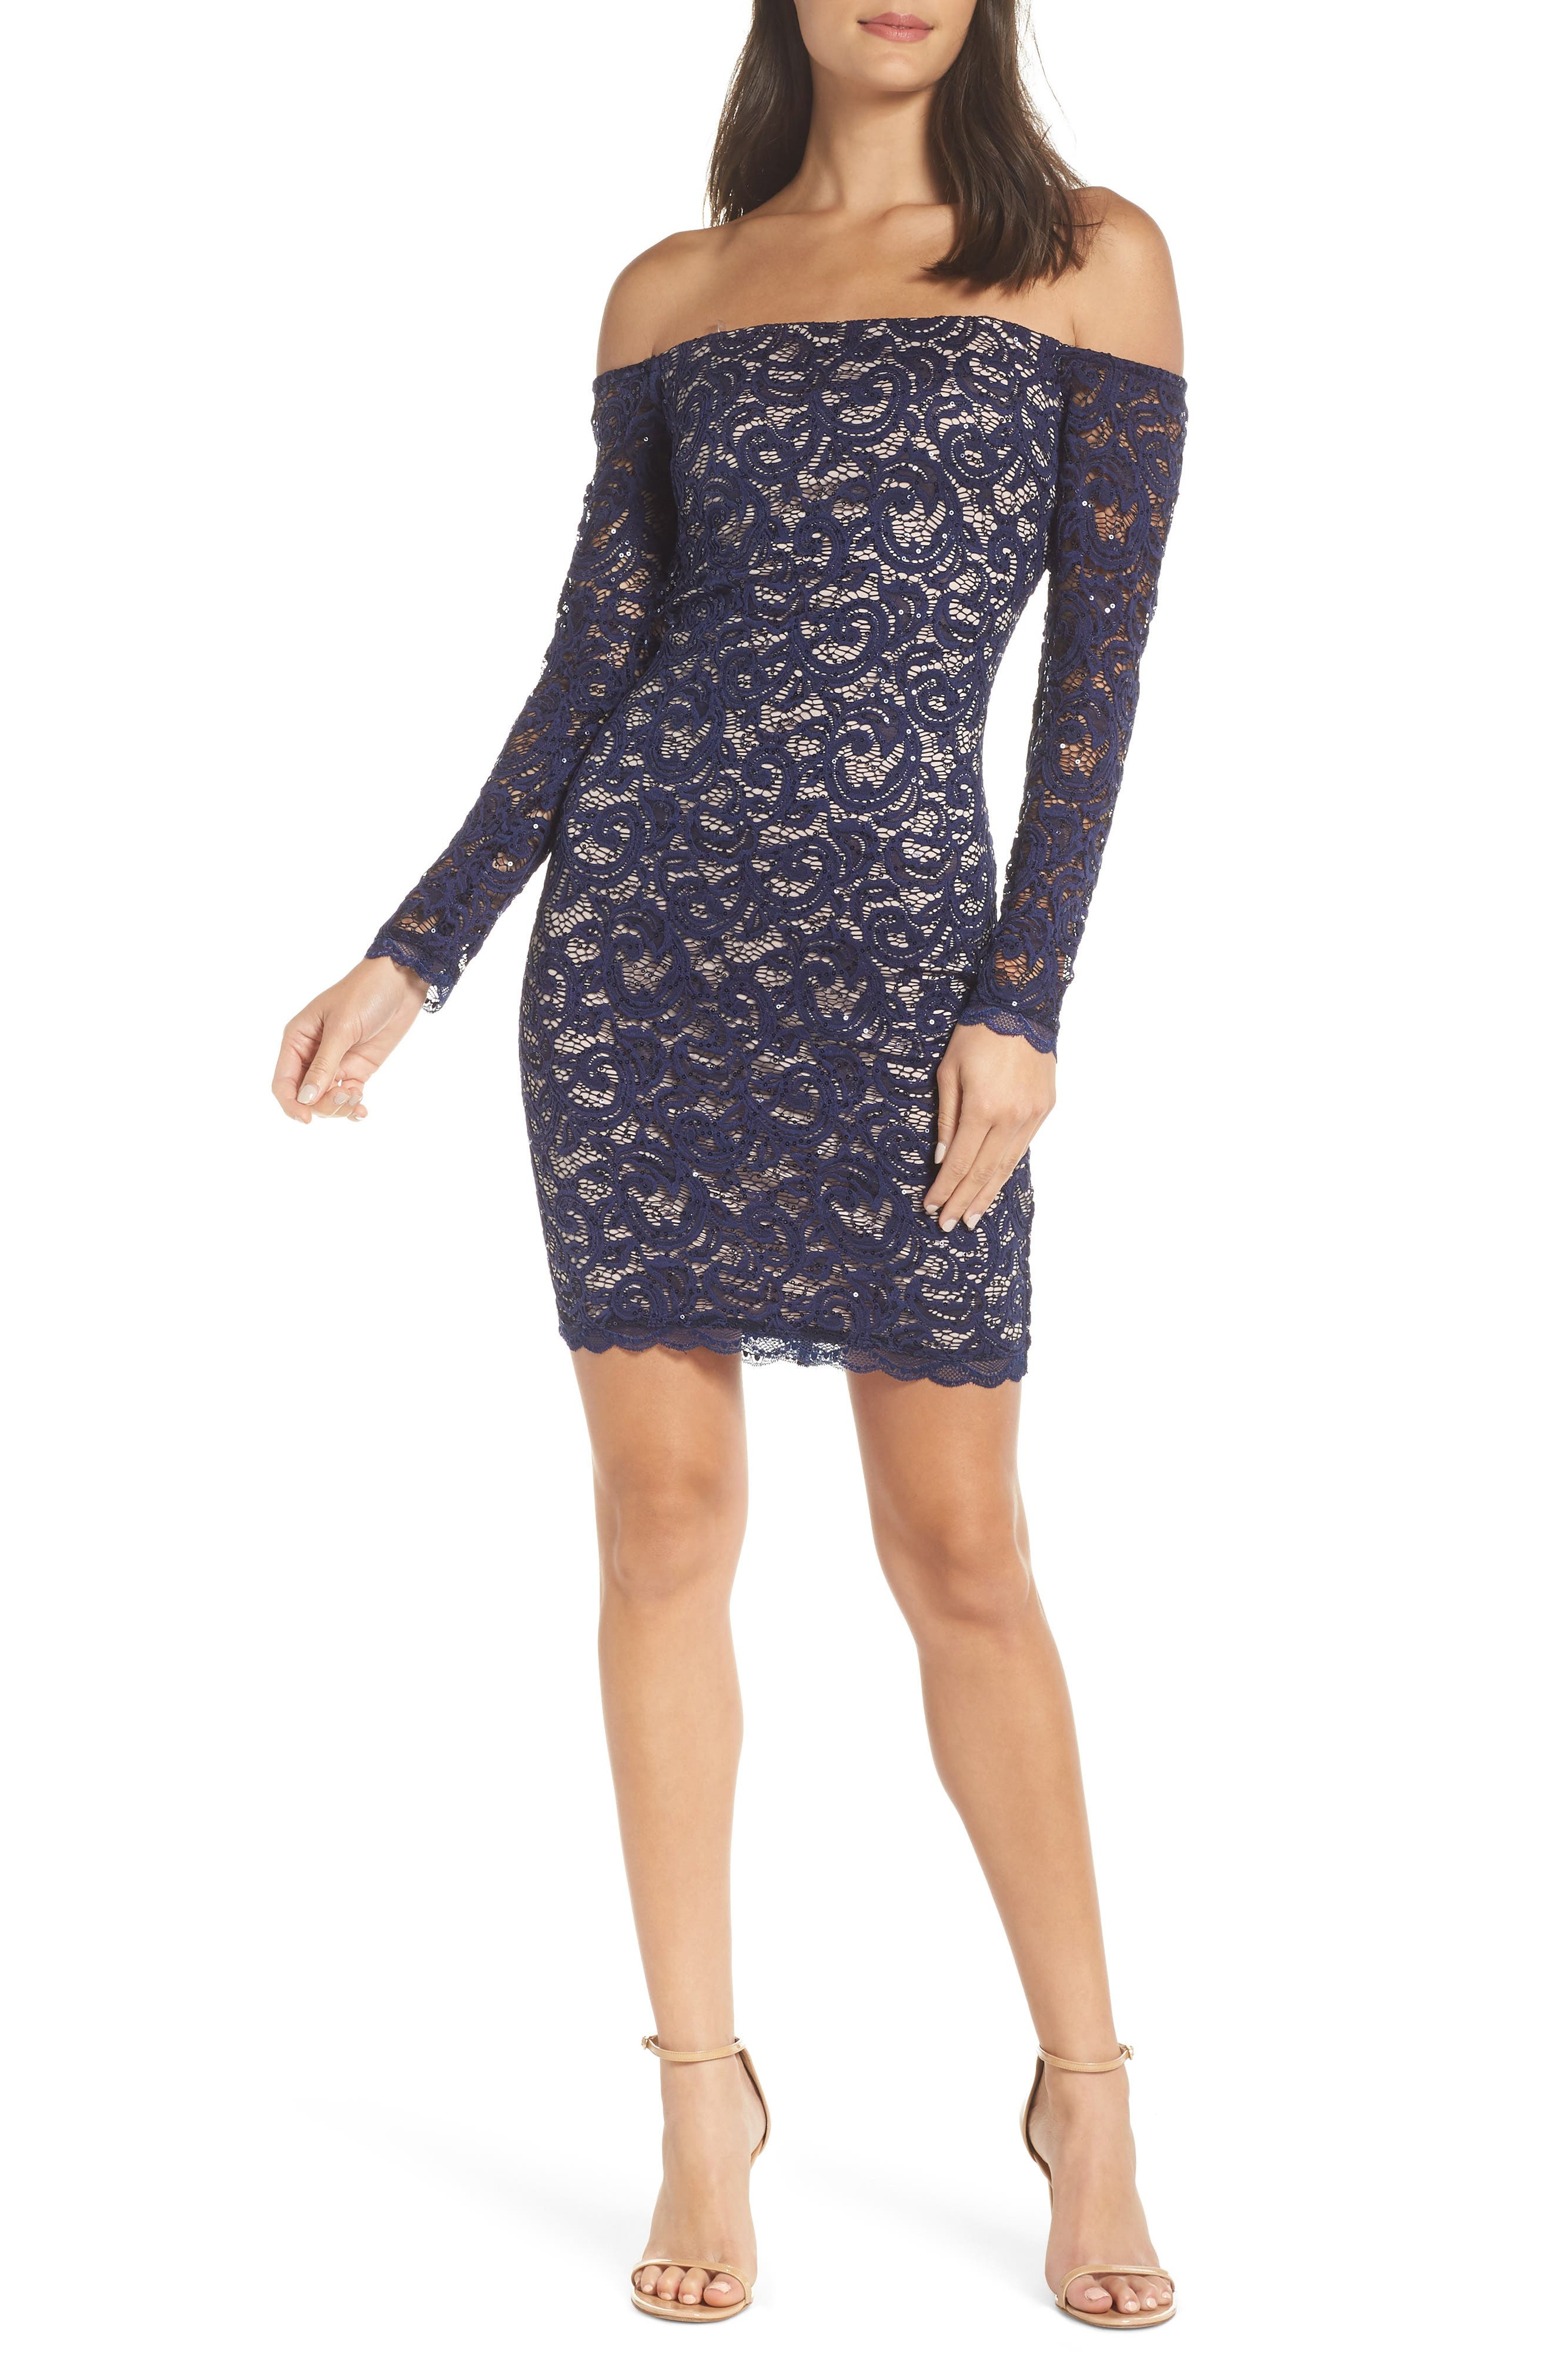 Sequin Hearts Off The Shoulder Long Sleeve Lace Cocktail Dress, Blue